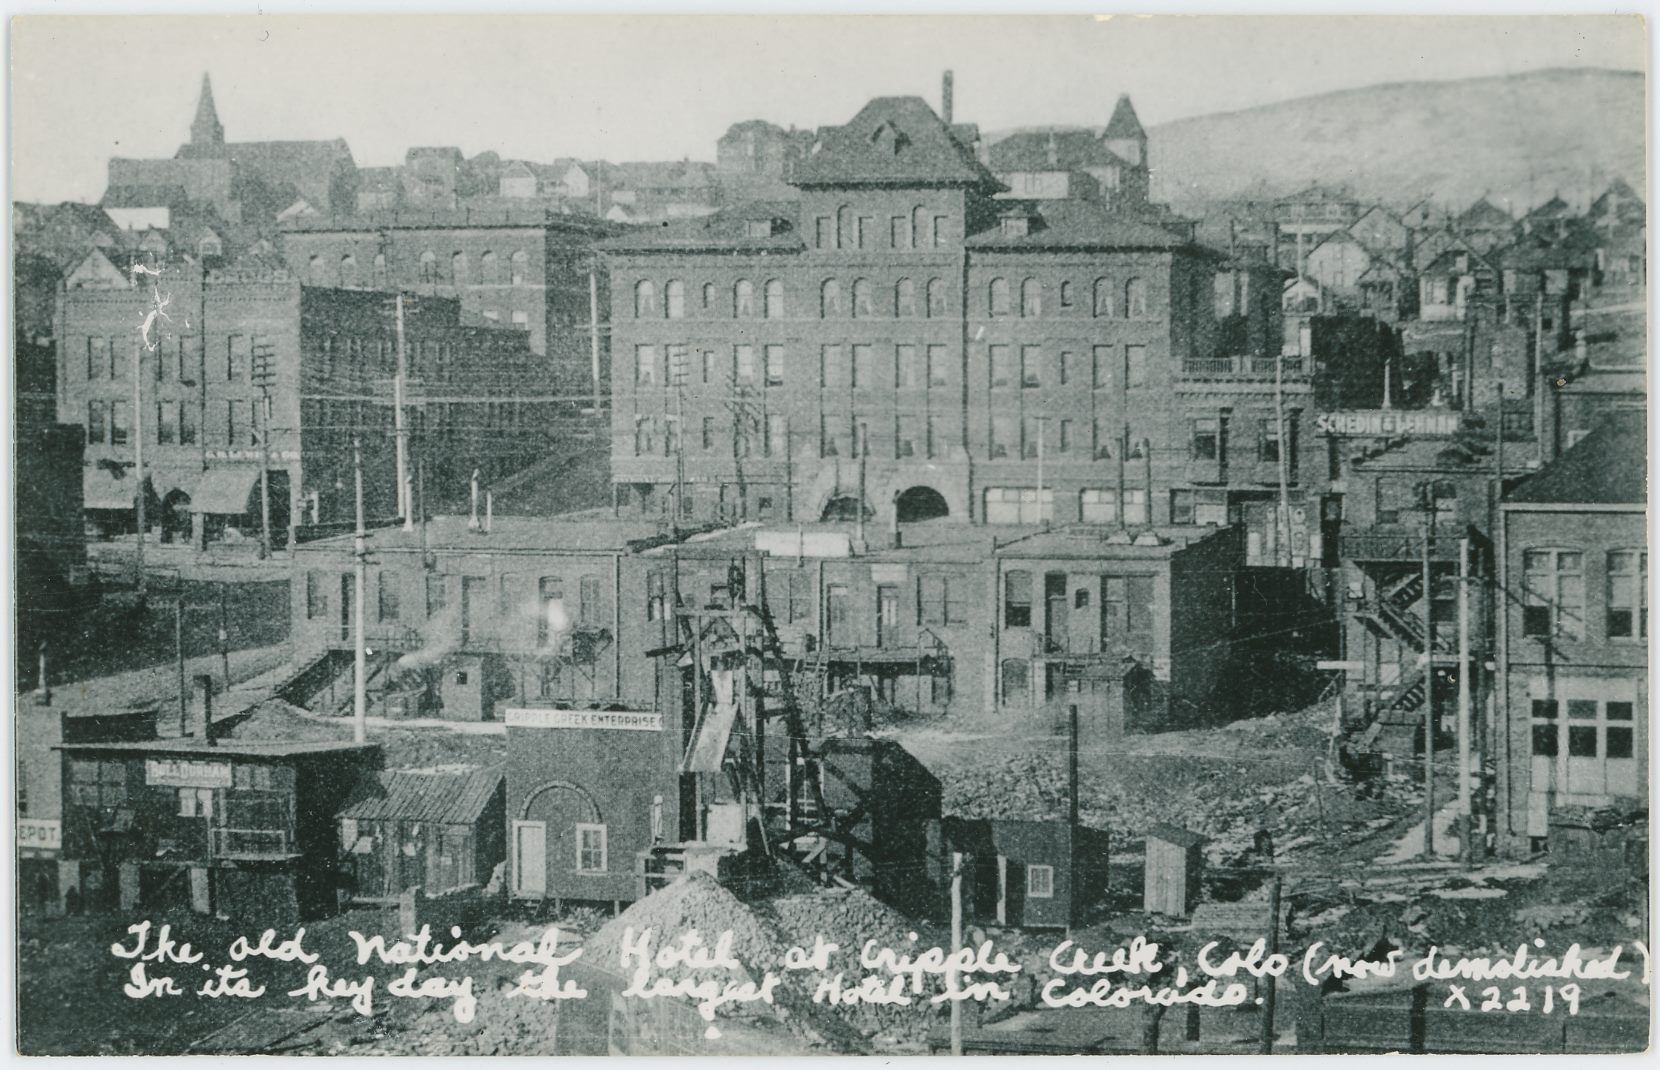 This view of Cripple Creek shows the Cripple Creek Enterprise Mining operation at the City Mine, or Cripple Creek City Mine, or other variations of similar names in foreground left, and the massive National Hotel more in center back. It also has a sign to the right of the hotel reading the name of two photographers Schedin & Lehman up on top front of a structure, which should be helpful in dating the image as there should be a way to learn when they did operate in the District, but I do not possess that info at time of this writing (30.03.2018).    Not the best quality but it is the only one I ever seen so Is hall not complain.